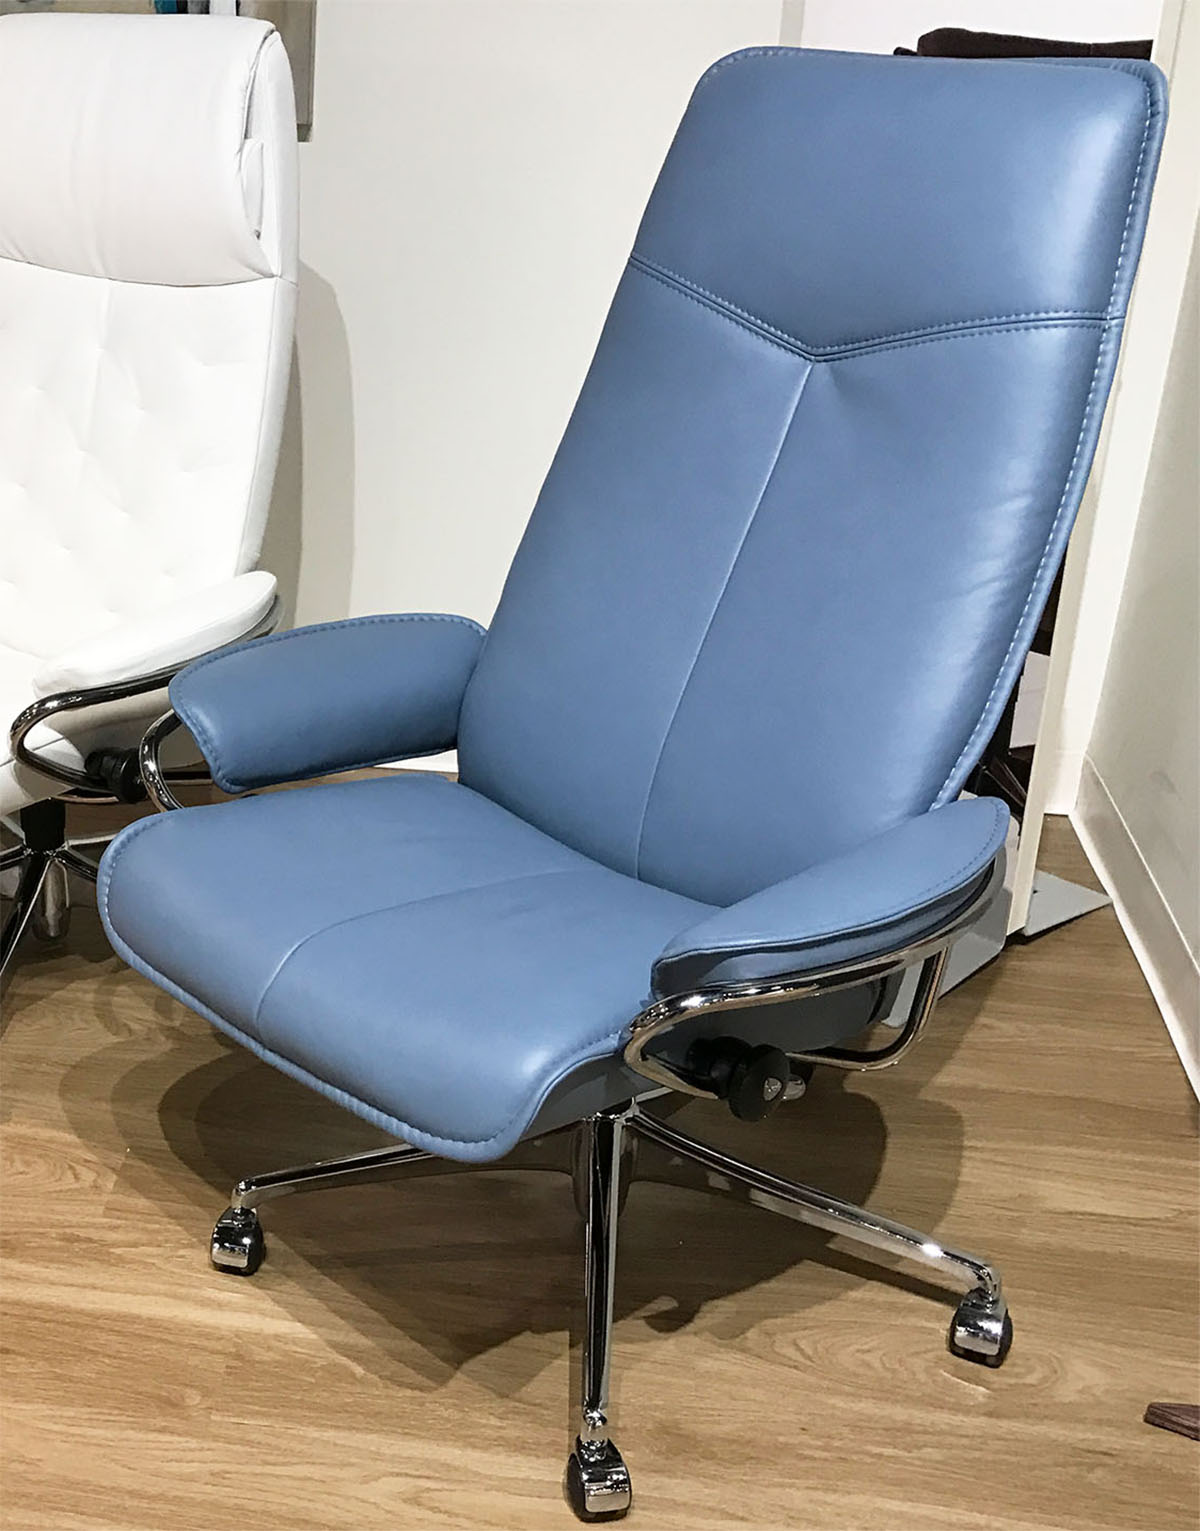 stressless city high back office desk chair in paloma sparrow blue leather by ekornes. Black Bedroom Furniture Sets. Home Design Ideas